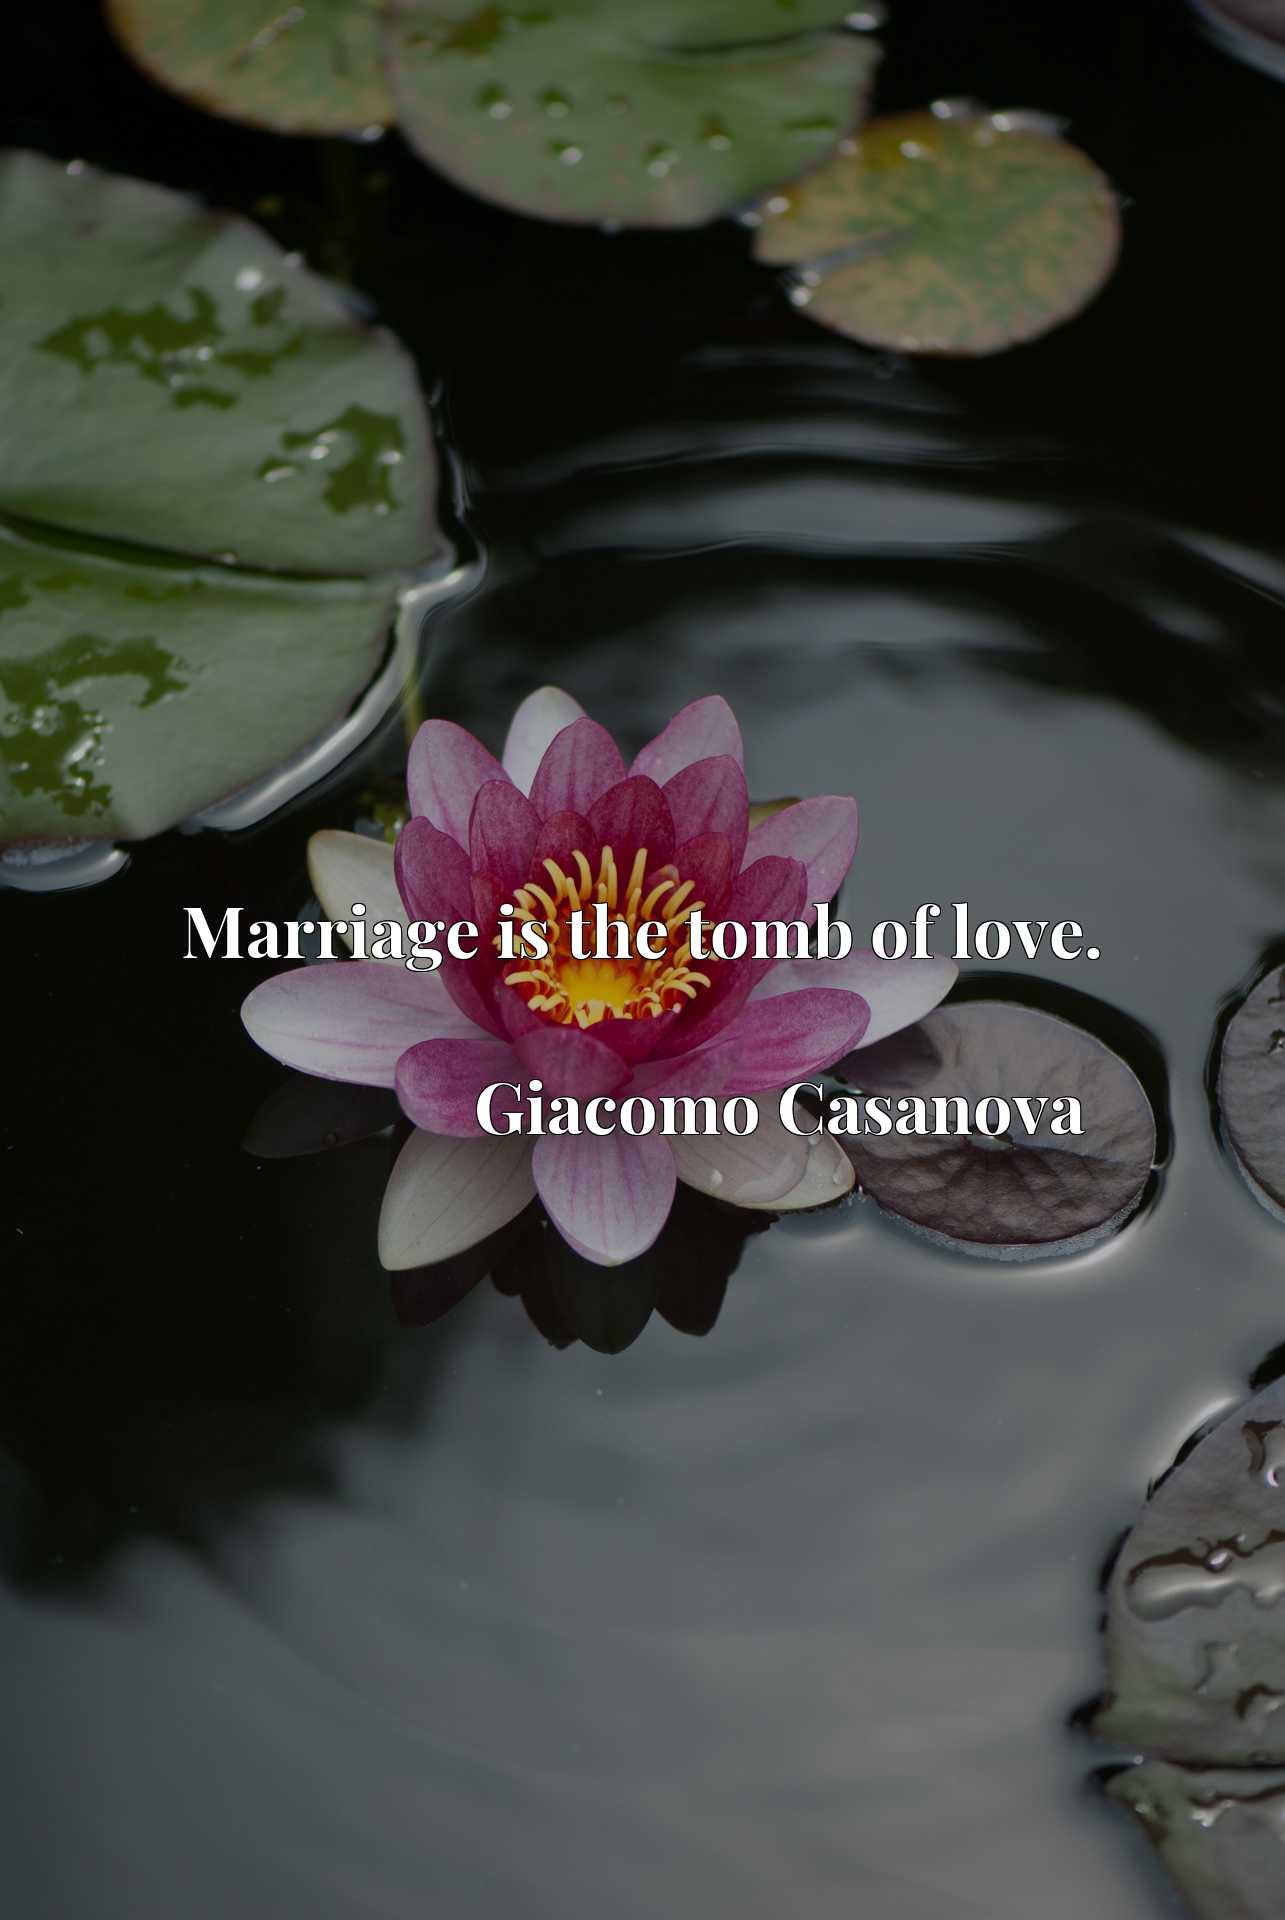 Marriage is the tomb of love.